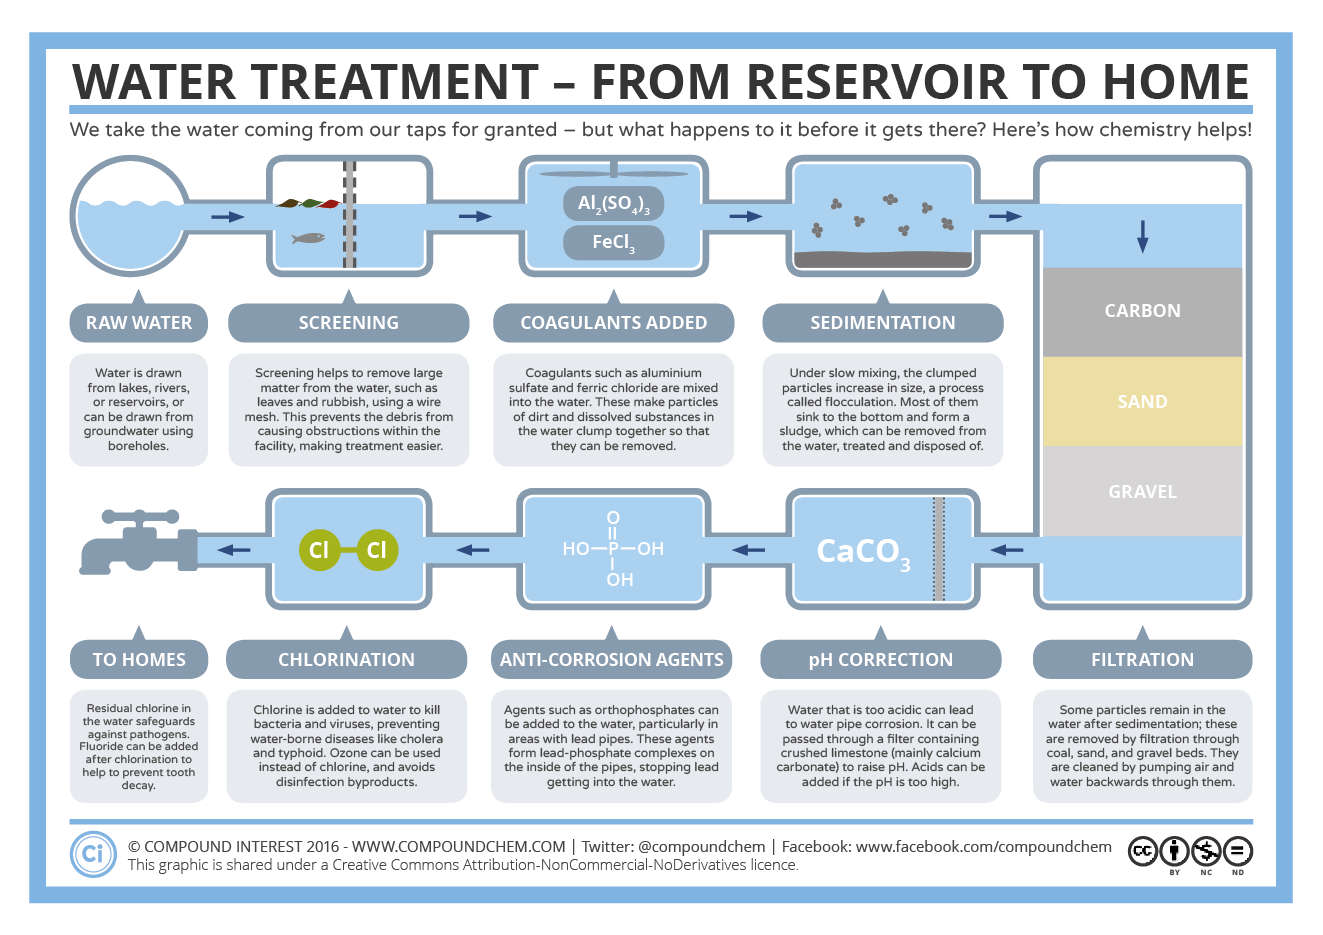 Water Treatment - From Reservoir to Home